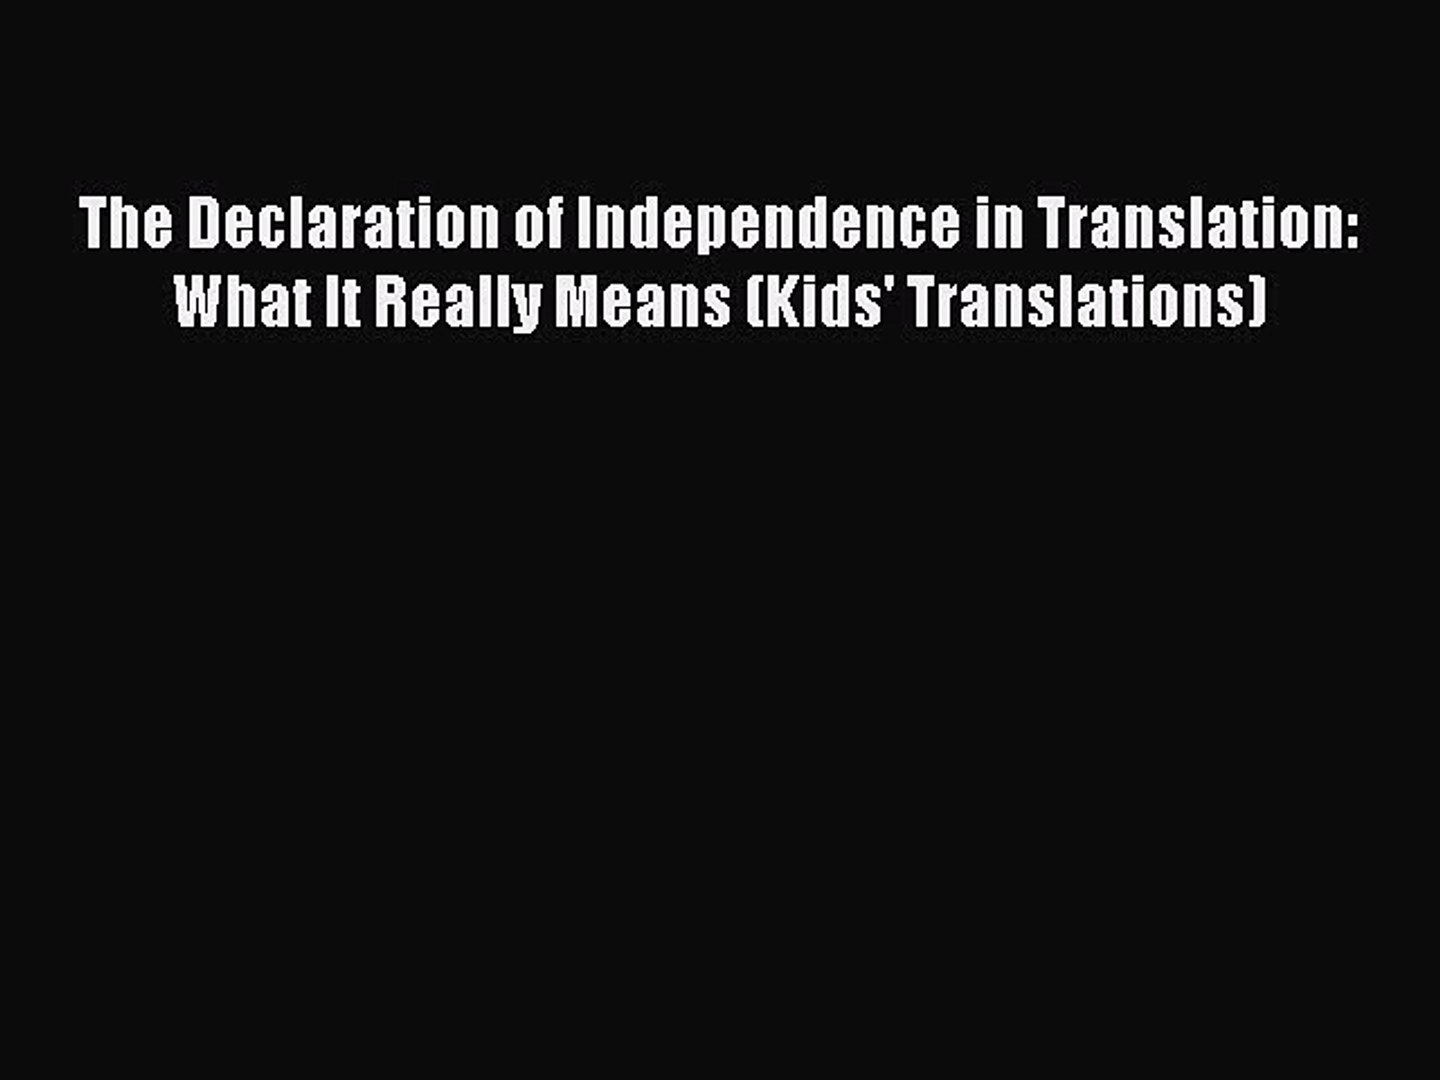 [PDF] The Declaration of Independence in Translation: What It Really Means (Kids' Translations)